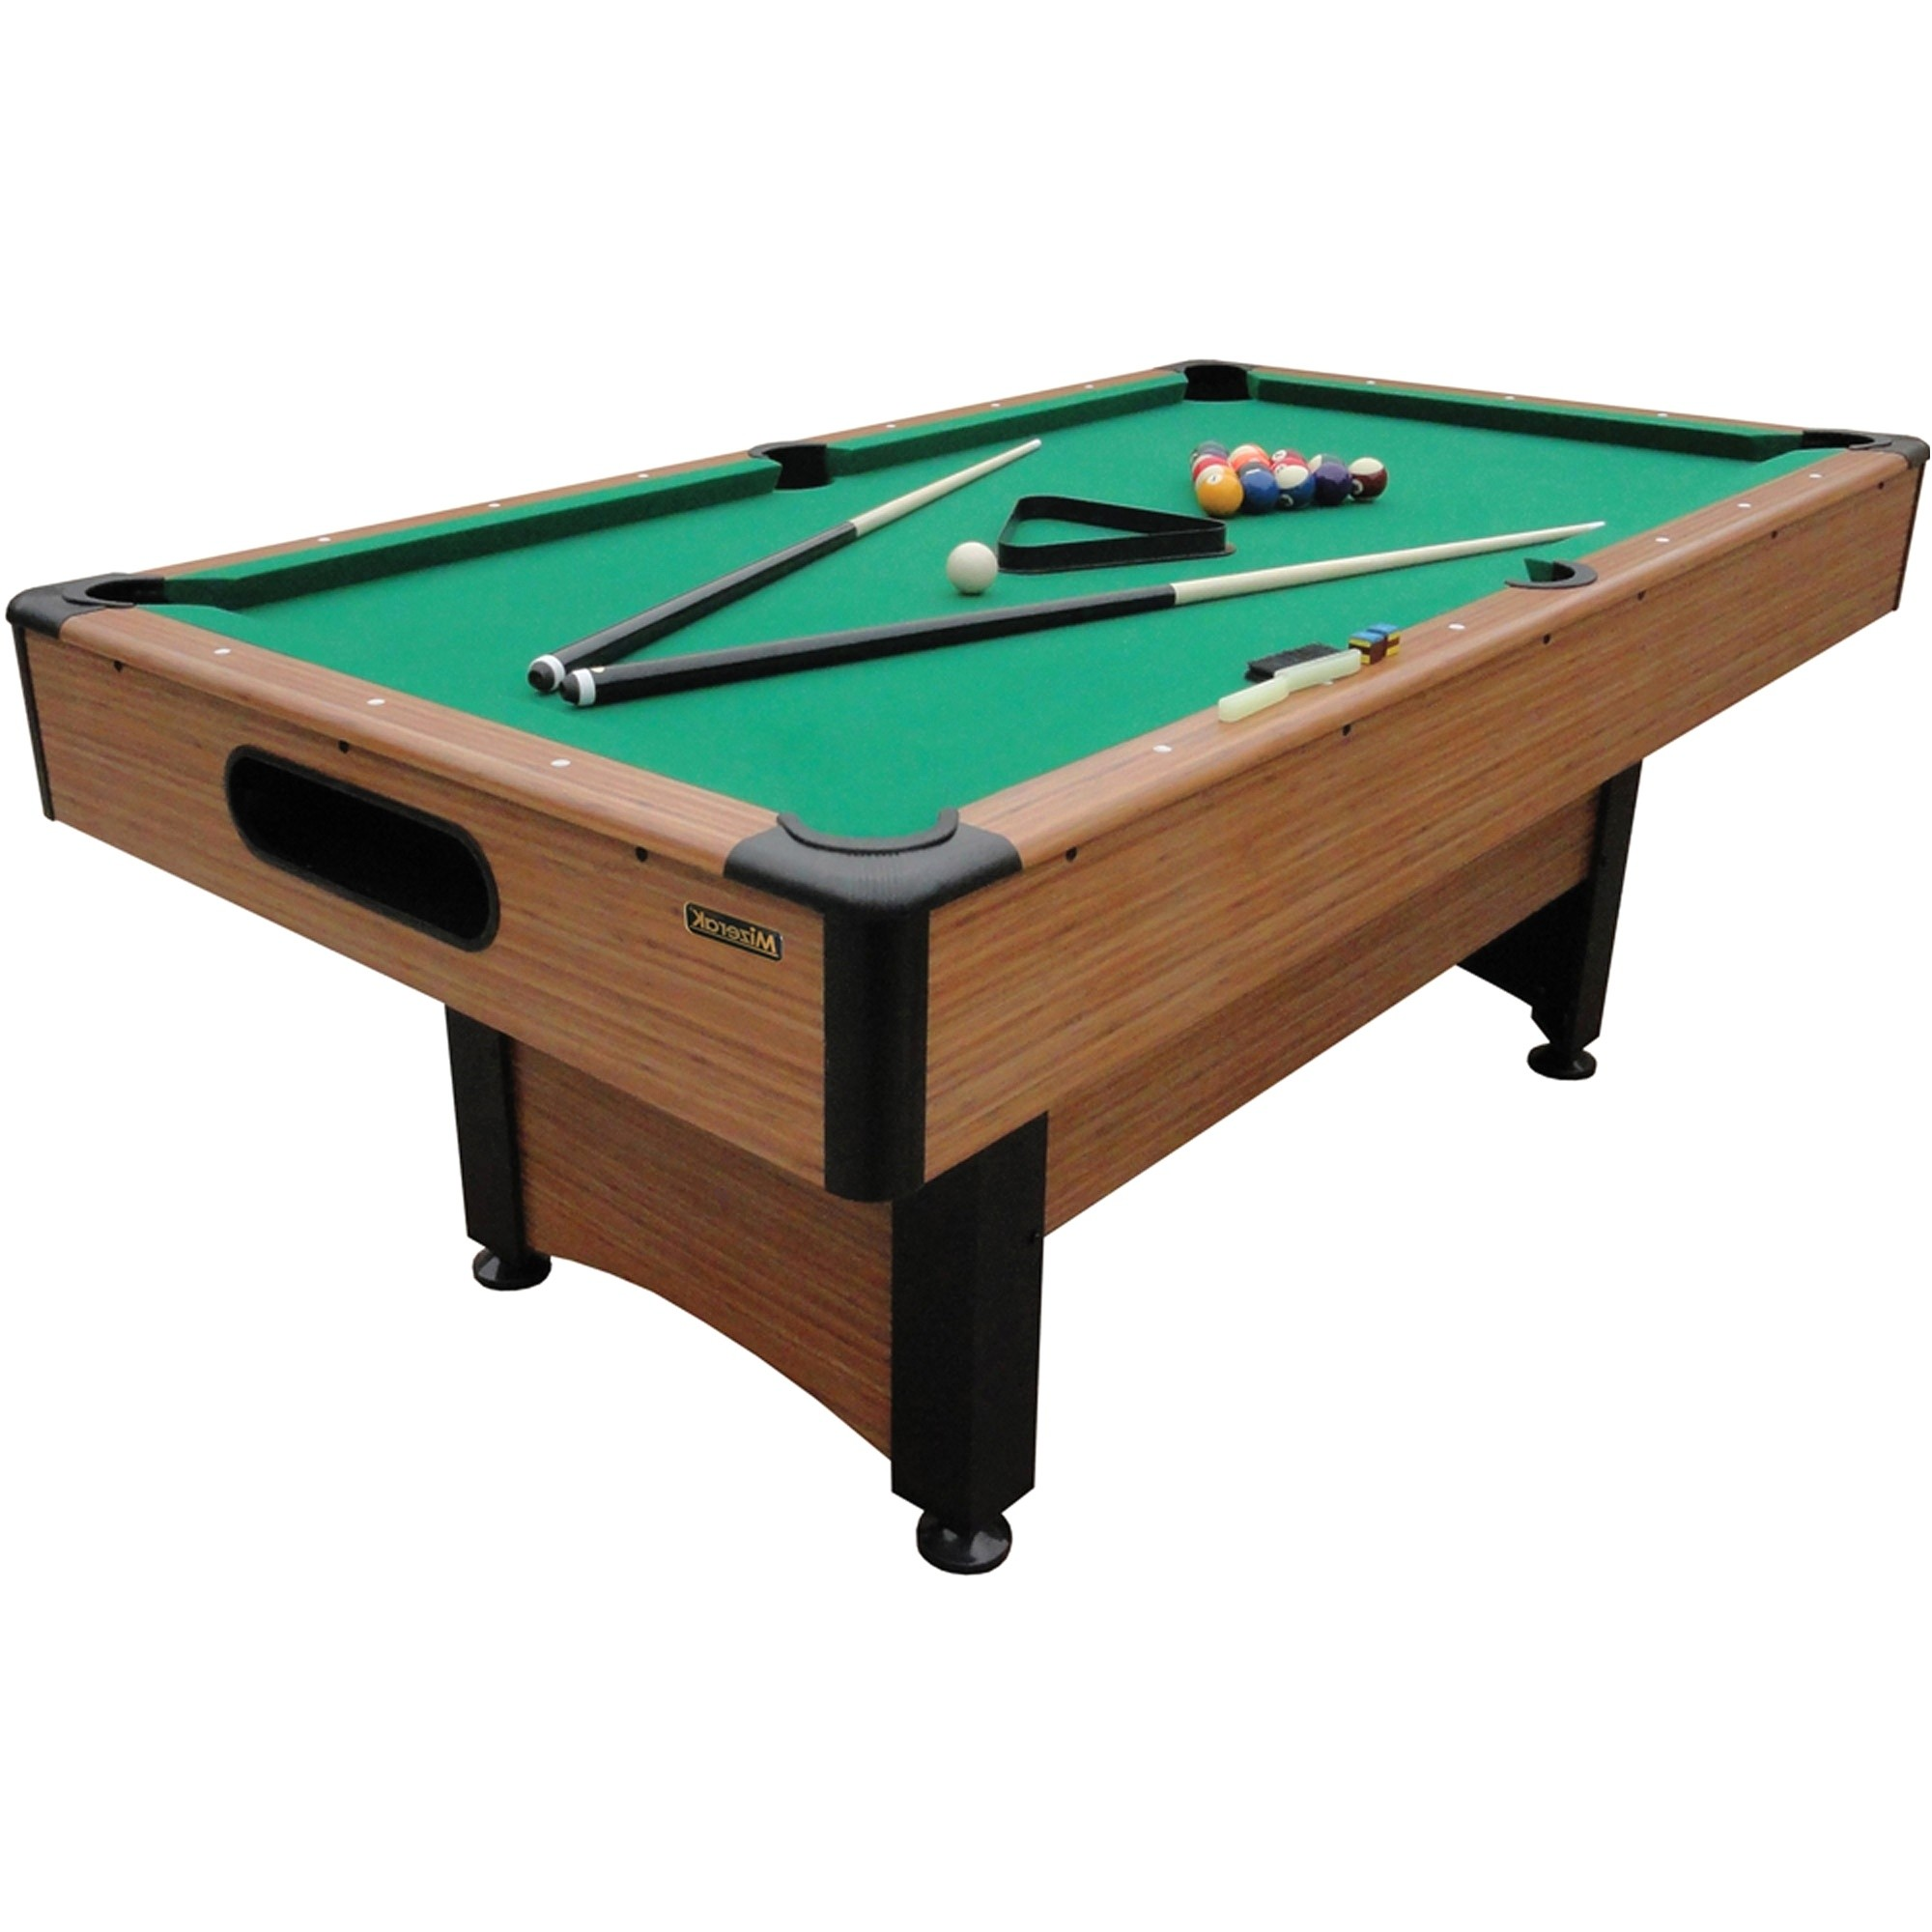 what size room do you need for a pool table